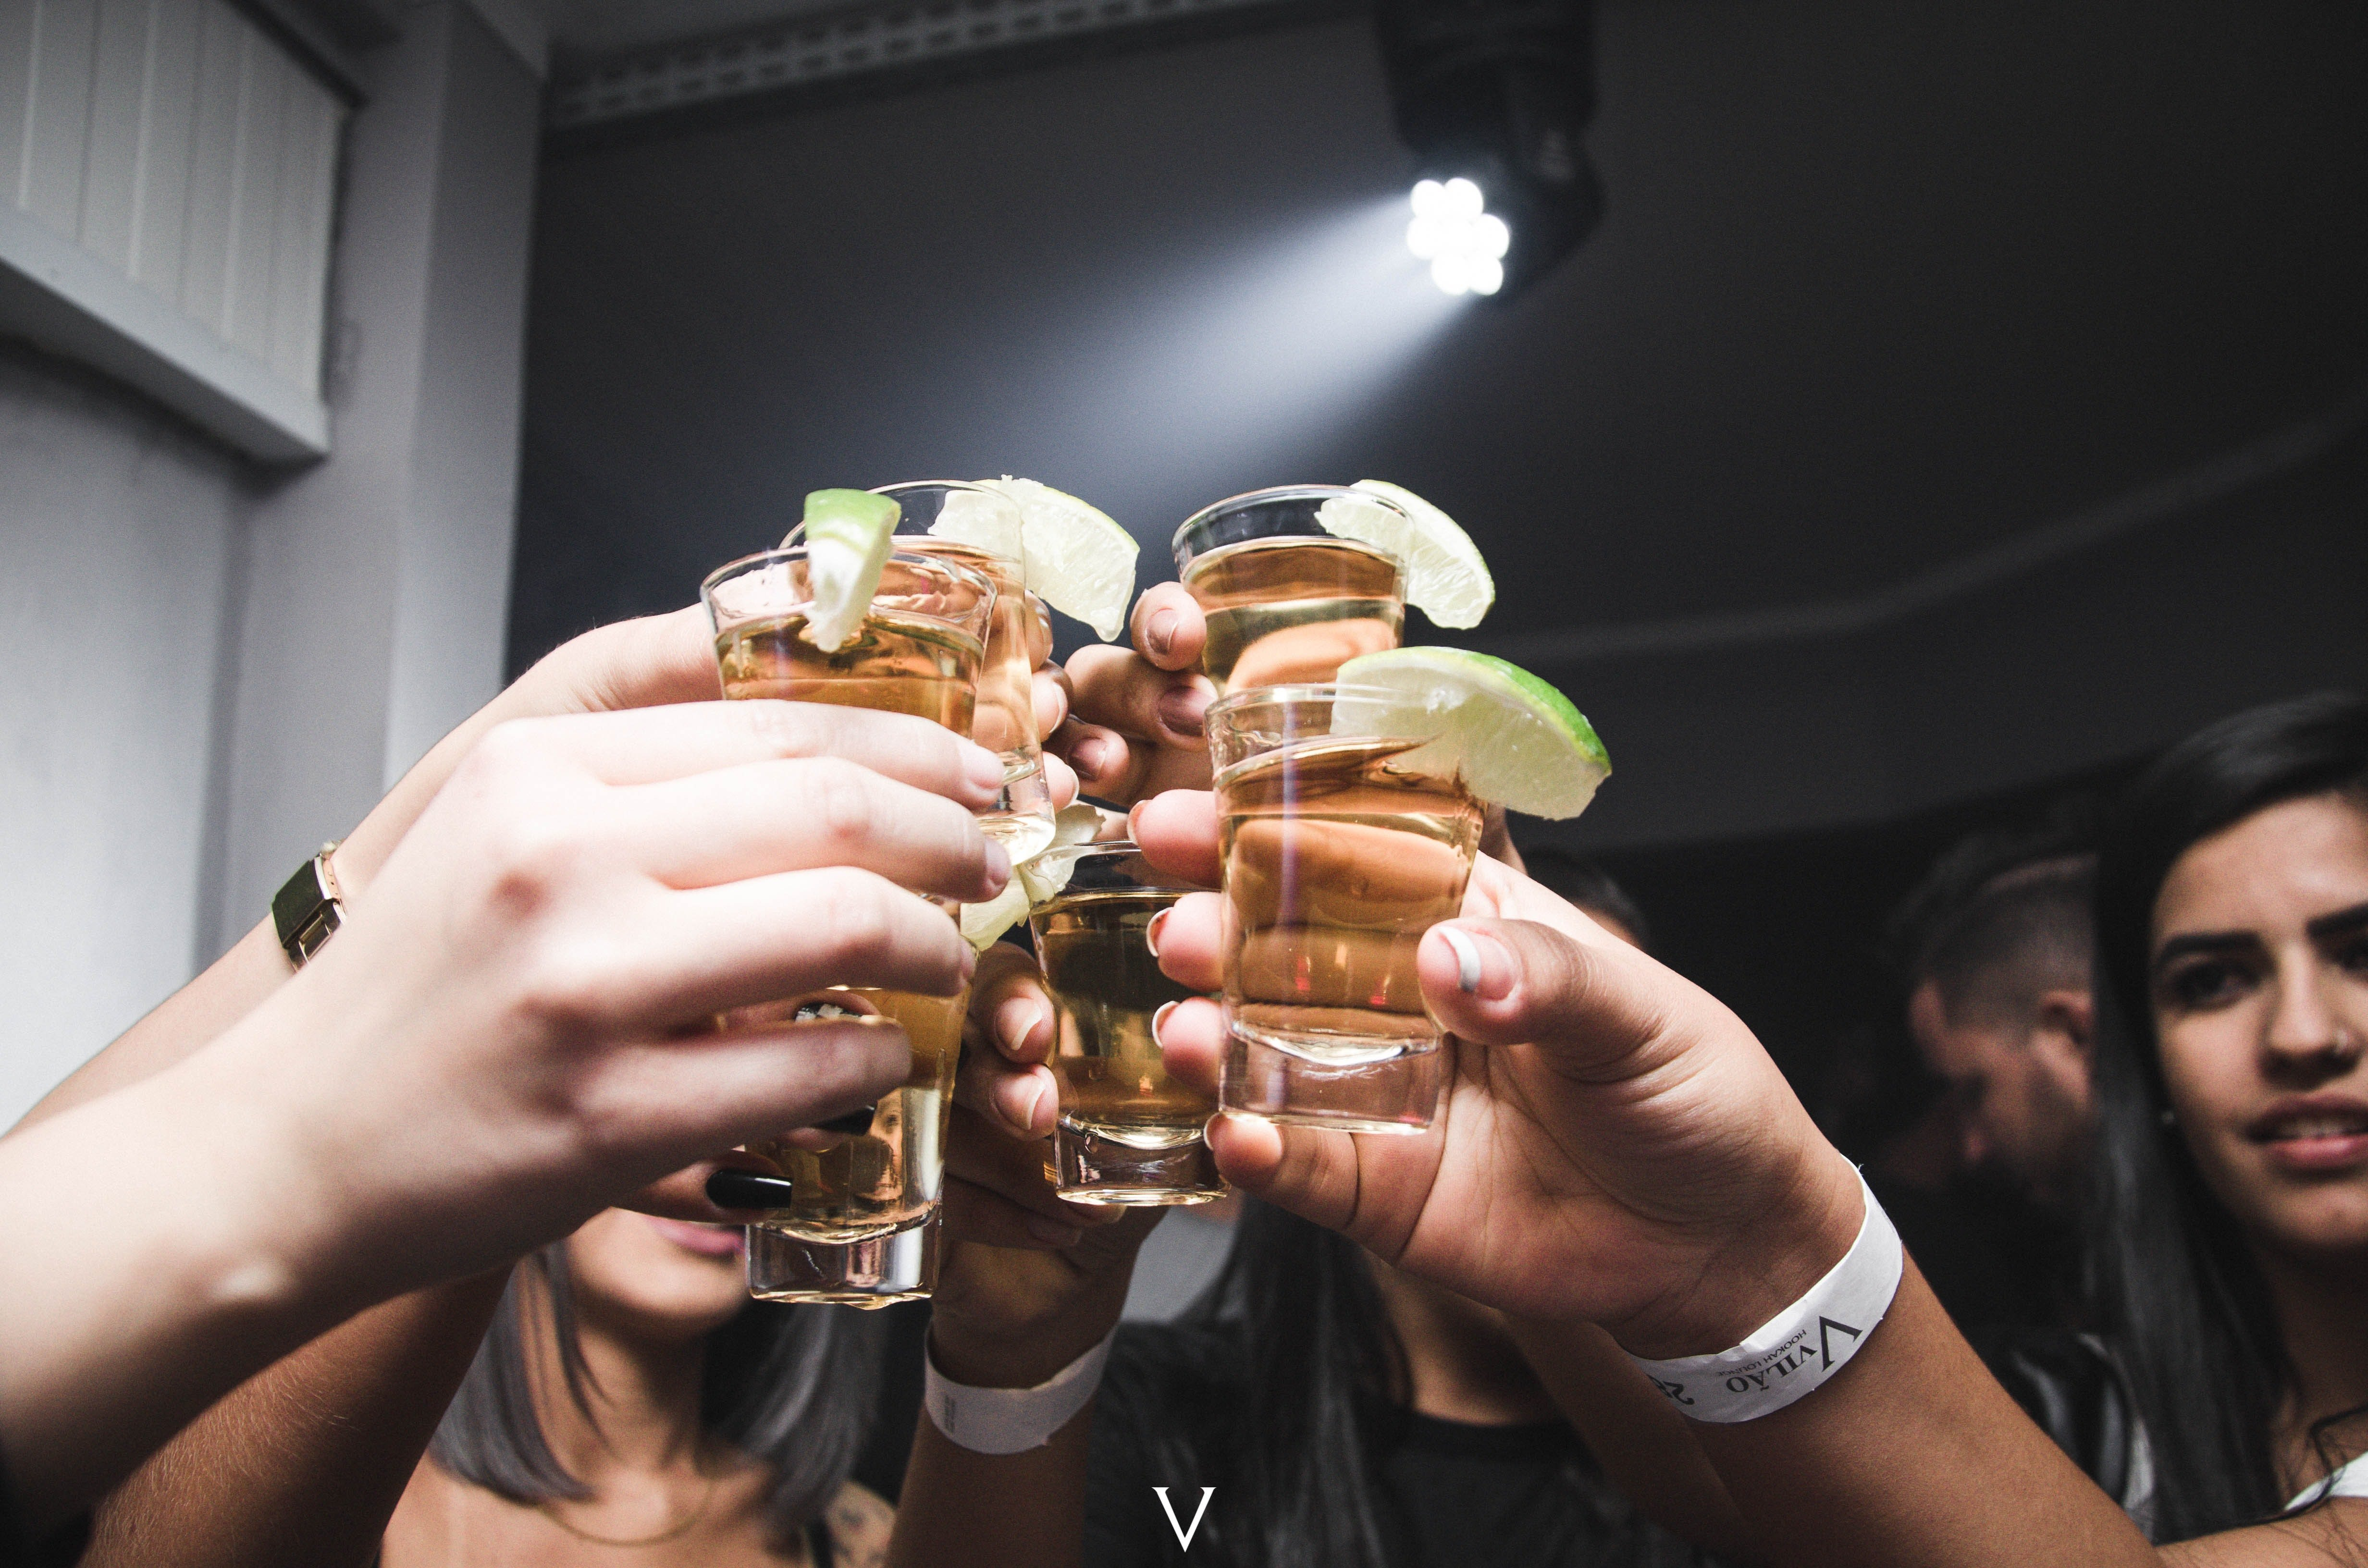 Tequila shots raised up. | Source: Pexel/ Isabella Mendes